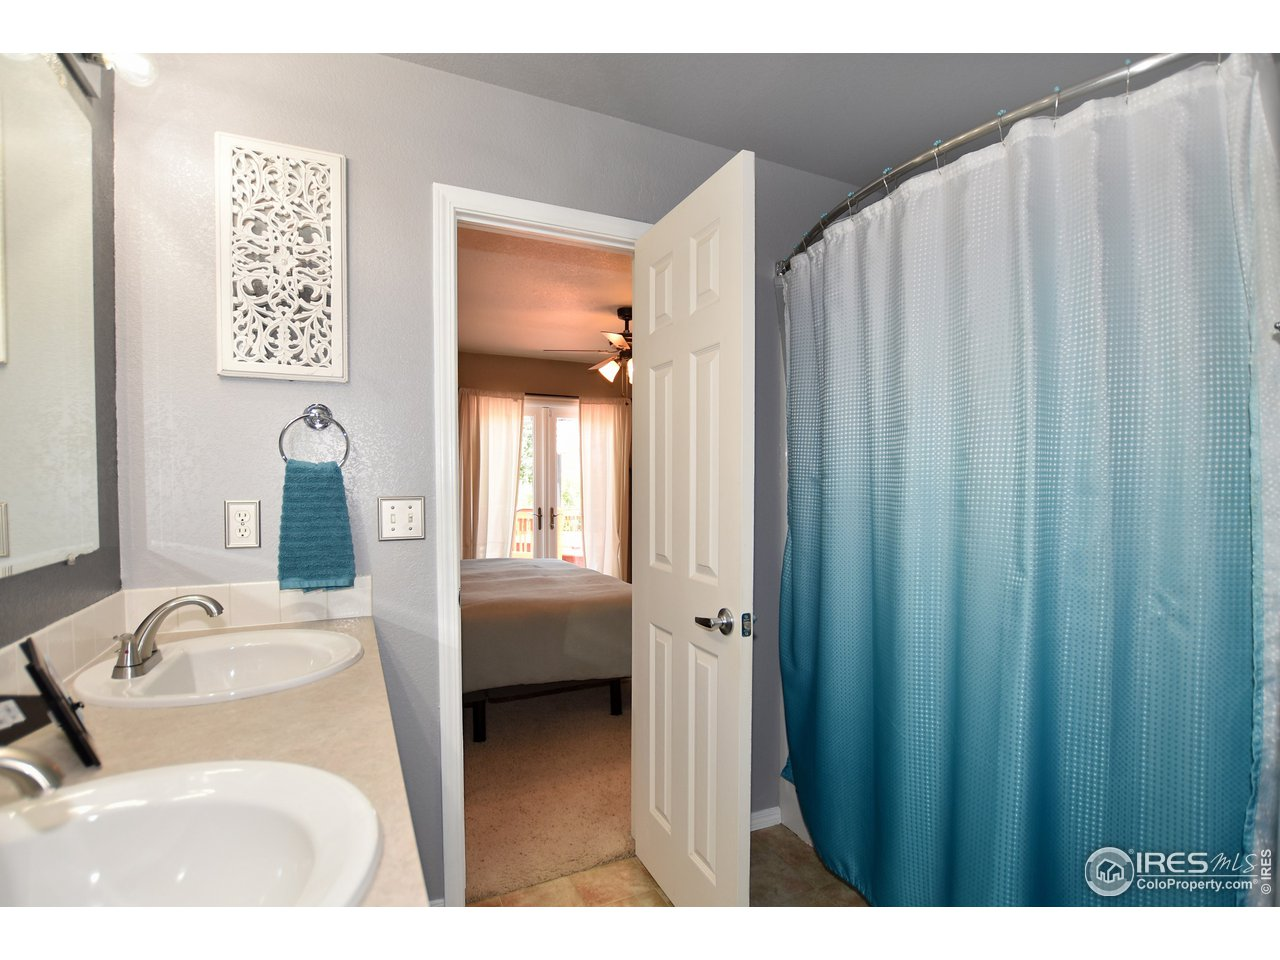 Owner's Suite private bath,  High vanity w double sinks  and full tub/shower